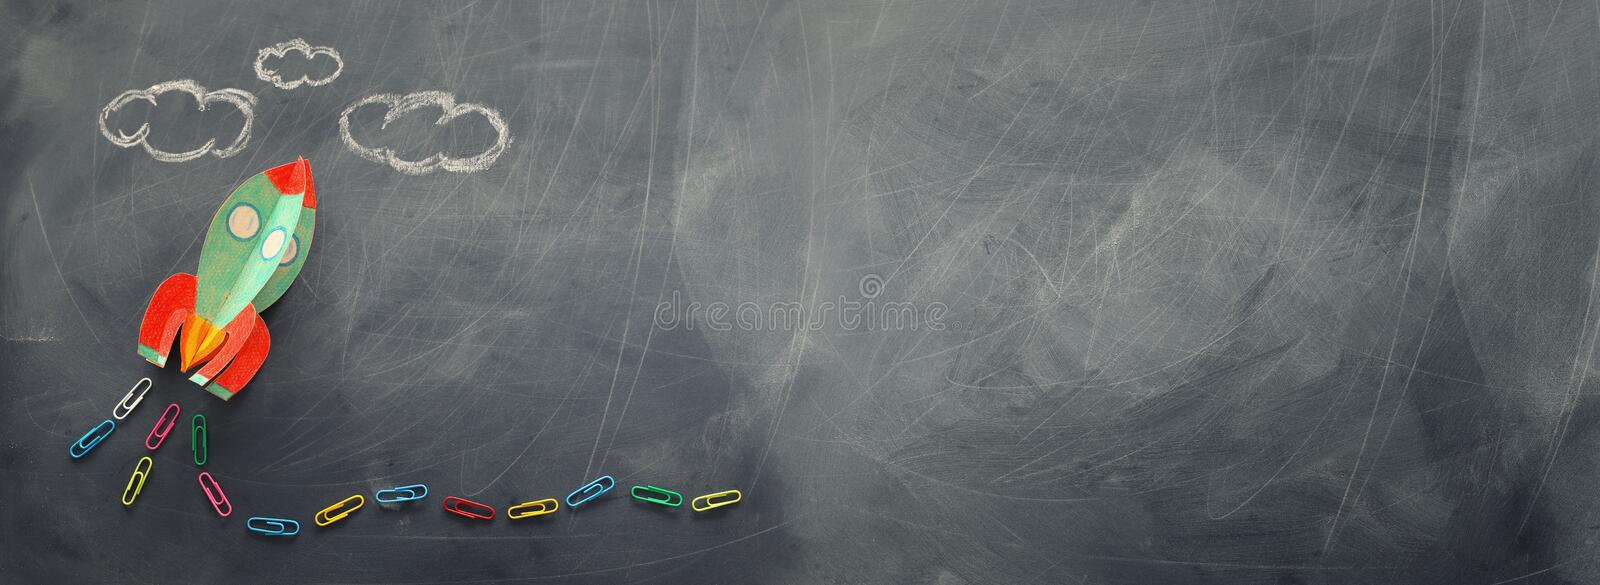 Education. Back to school concept. rocket cut from paper and painted over blackboard background. top view, flat lay. banner.  royalty free stock image